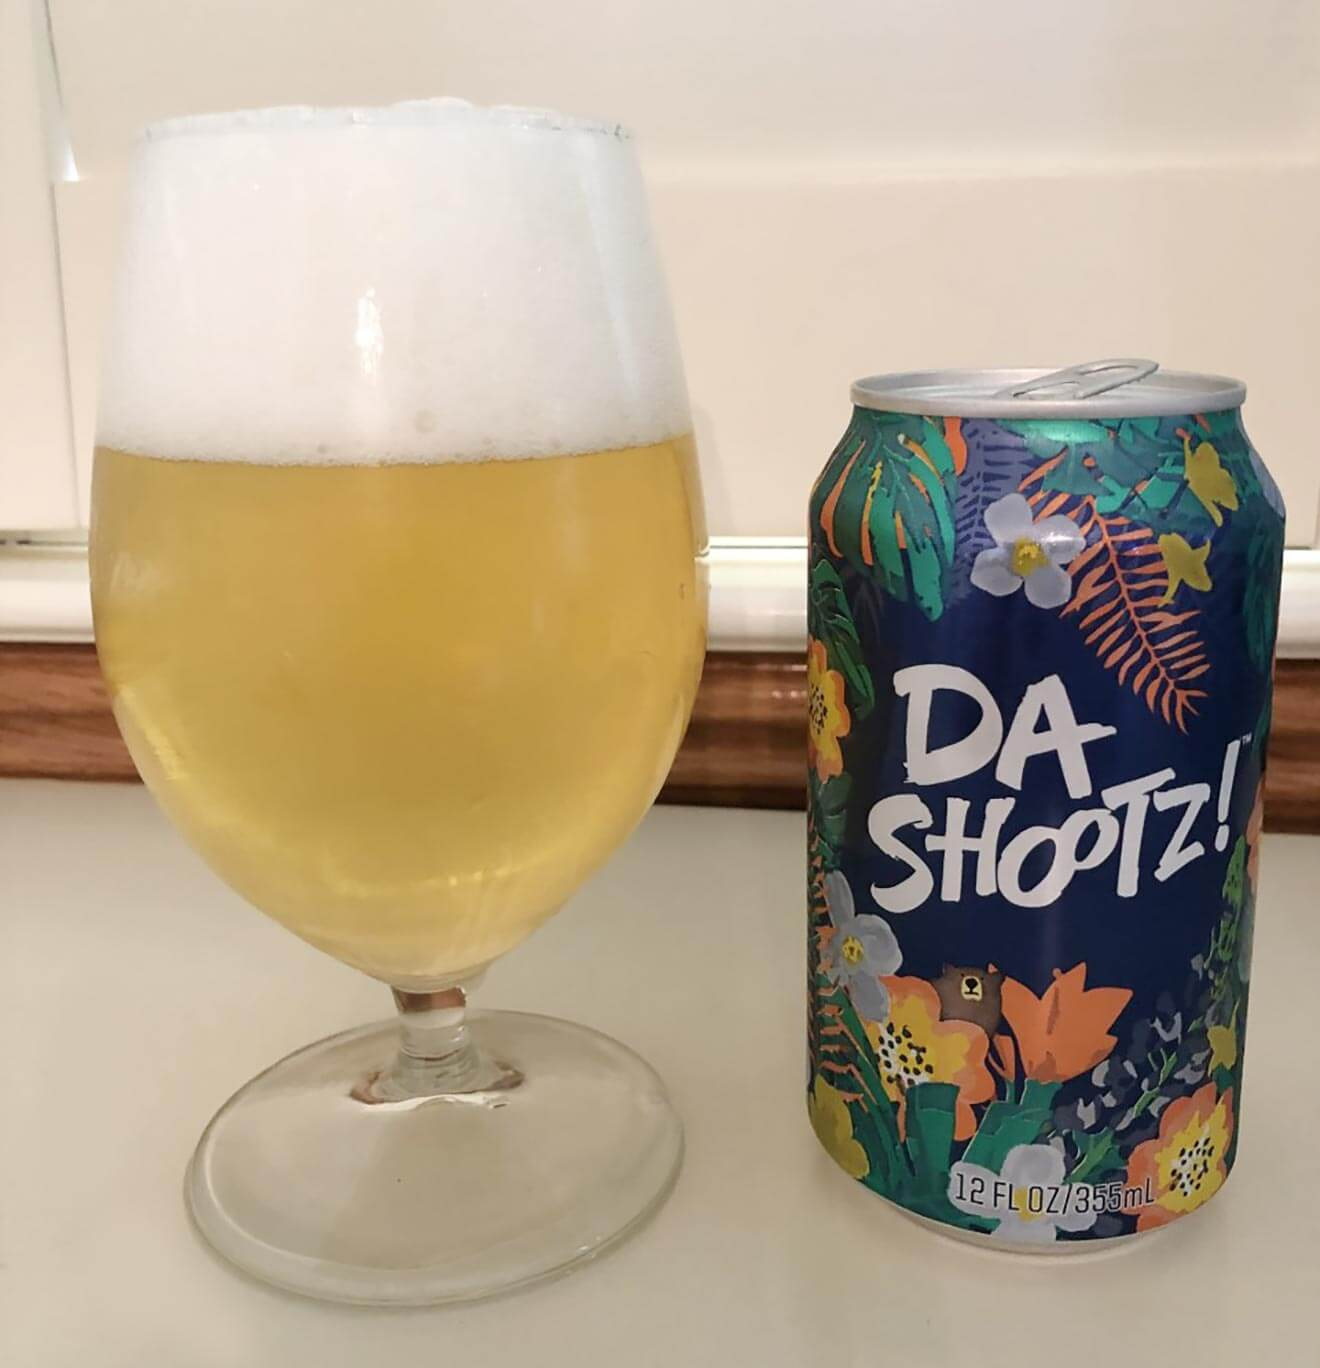 Deschutes Brewery Da Shootz! Bohemian Pilsner, glass and can